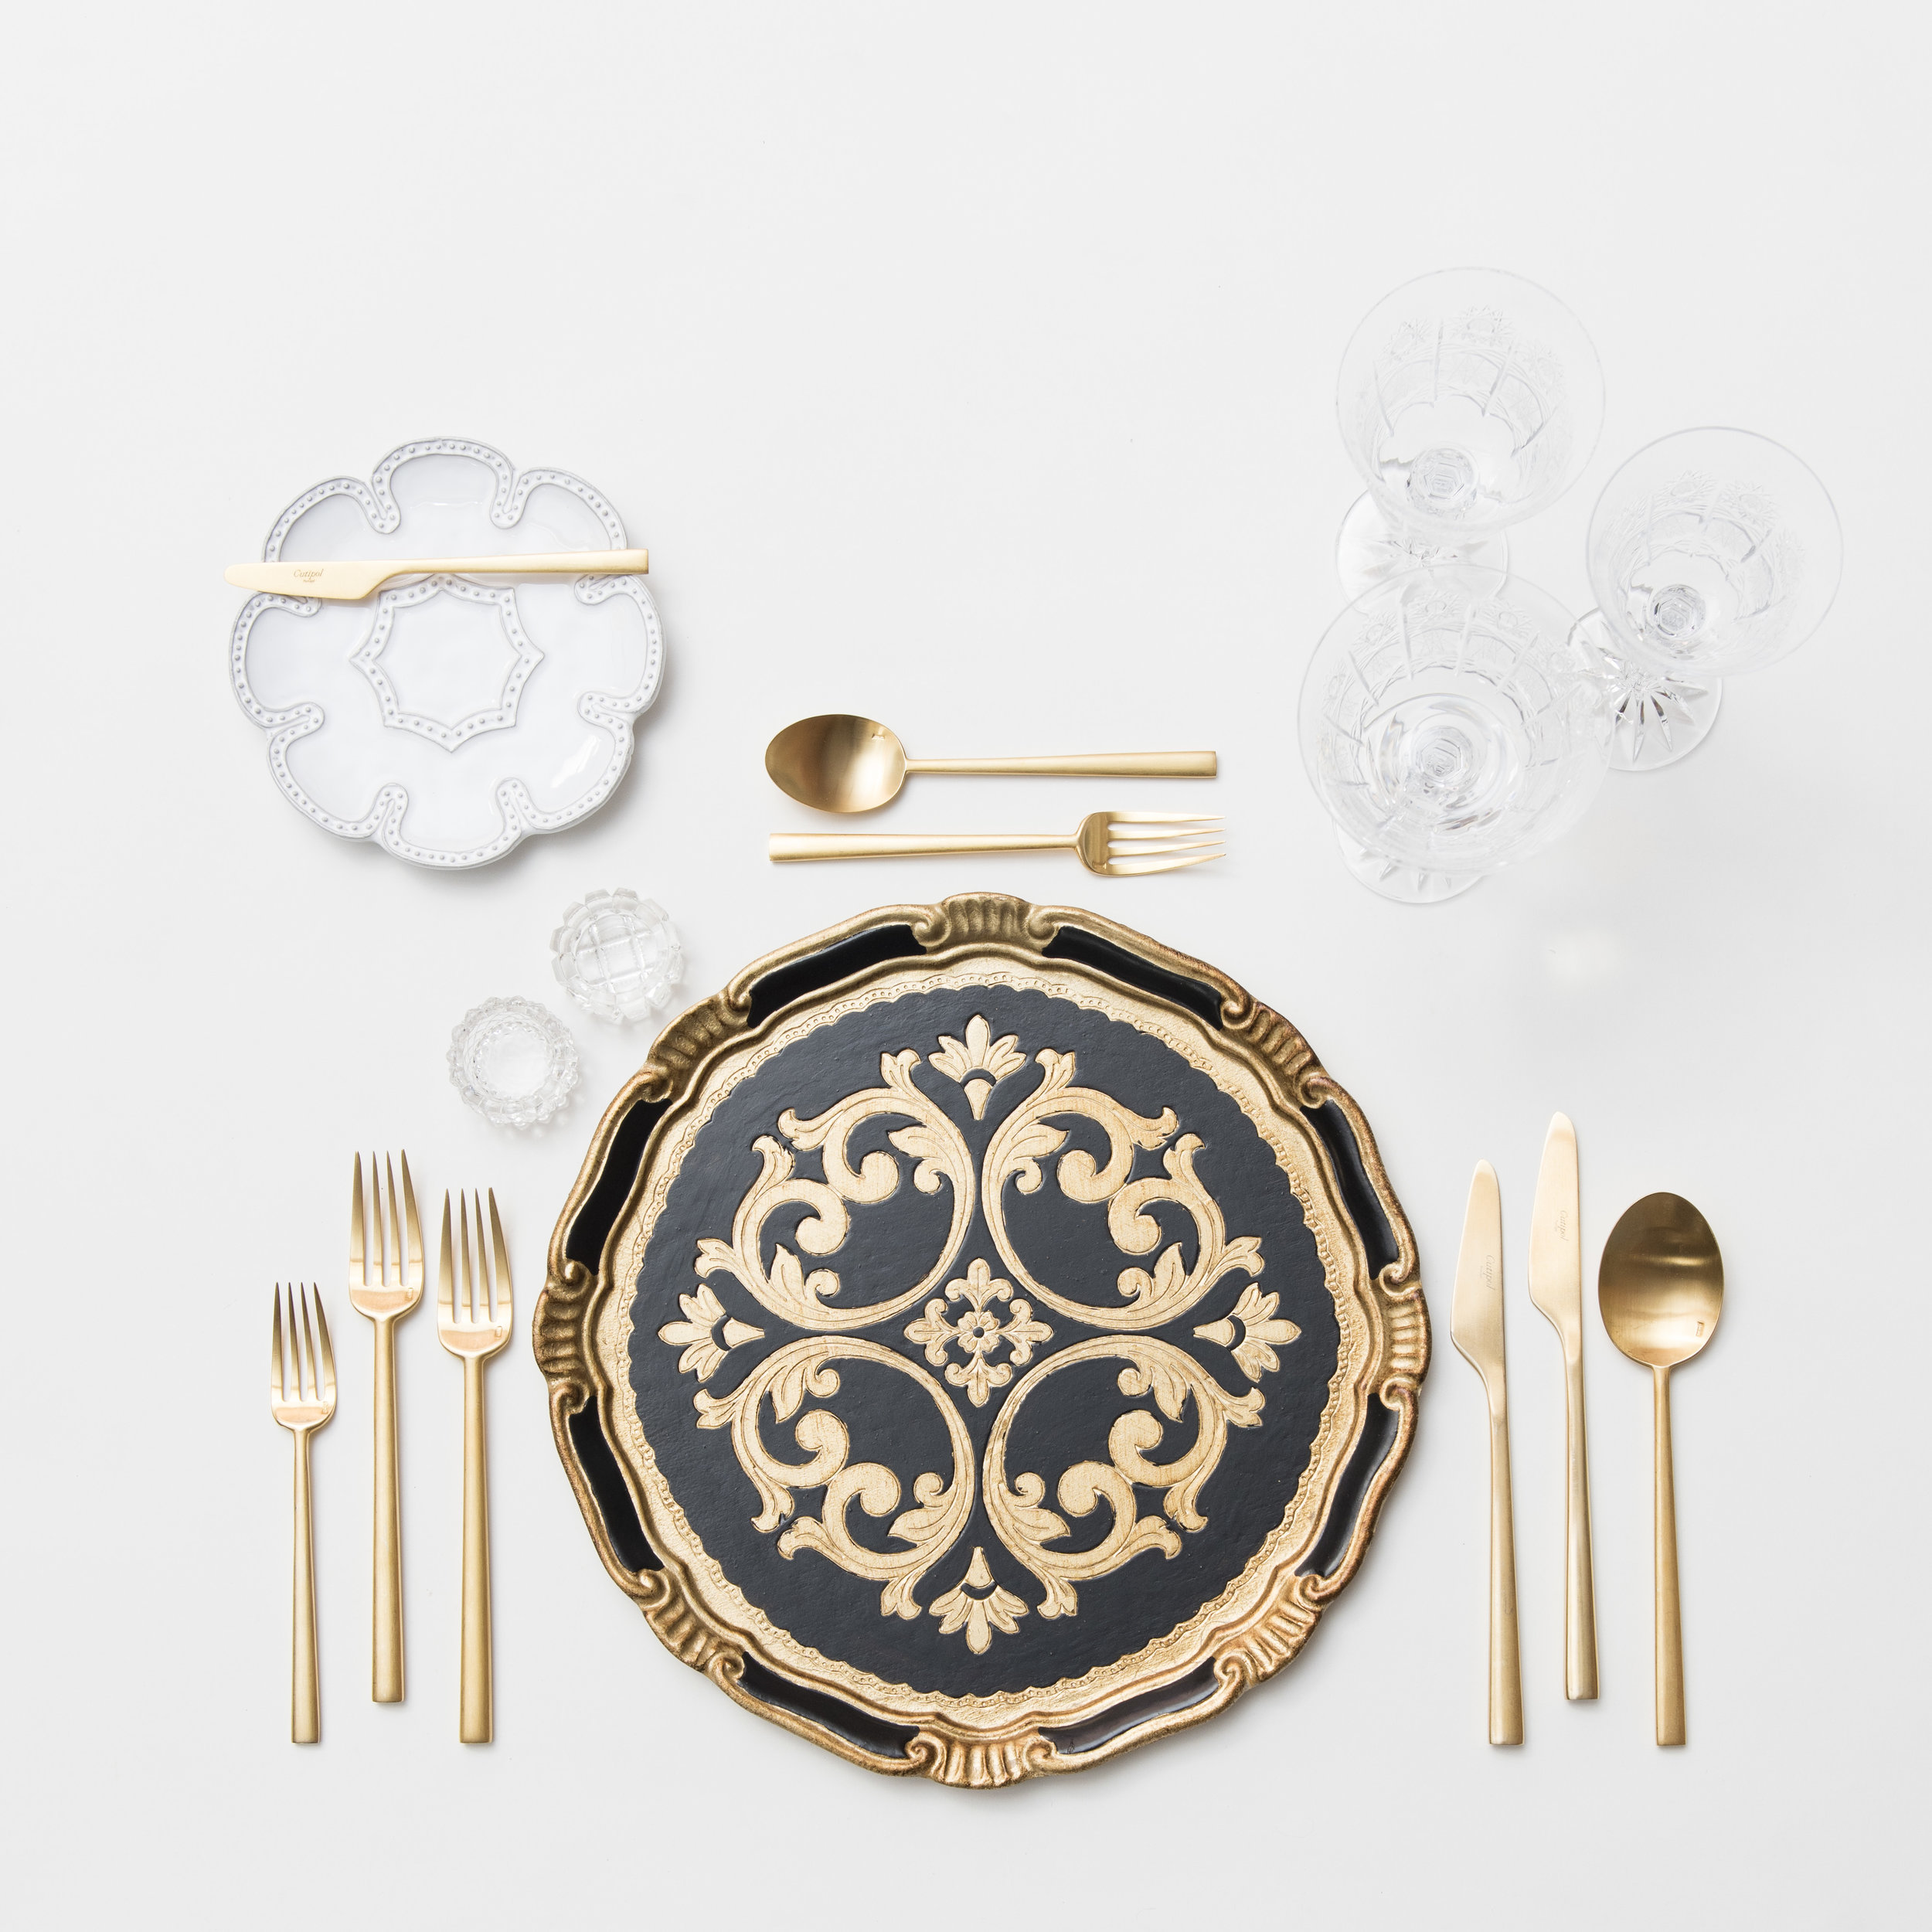 RENT: Florentine Chargers in Black/Gold + Signature Collection Dinnerware + Rondo Flatware in Brushed 24k Gold + Czech Crystal Stemware + Antique Crystal Salt Cellars  SHOP: Florentine Chargers in Black/Gold + Rondo Flatware in Brushed 24k Gold